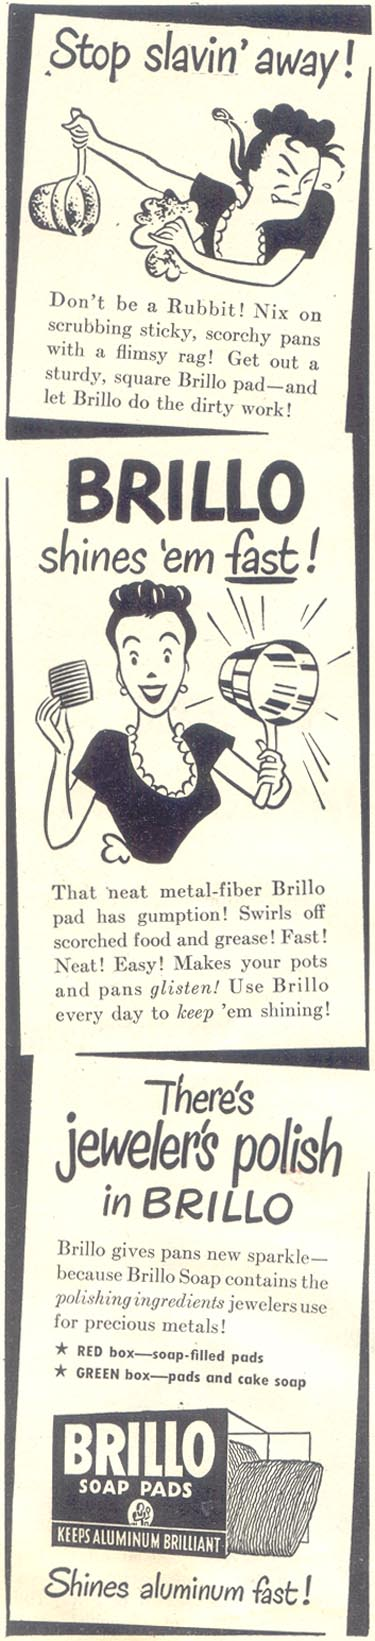 BRILLO SOAP PADS GOOD HOUSEKEEPING 07/01/1948 p. 8